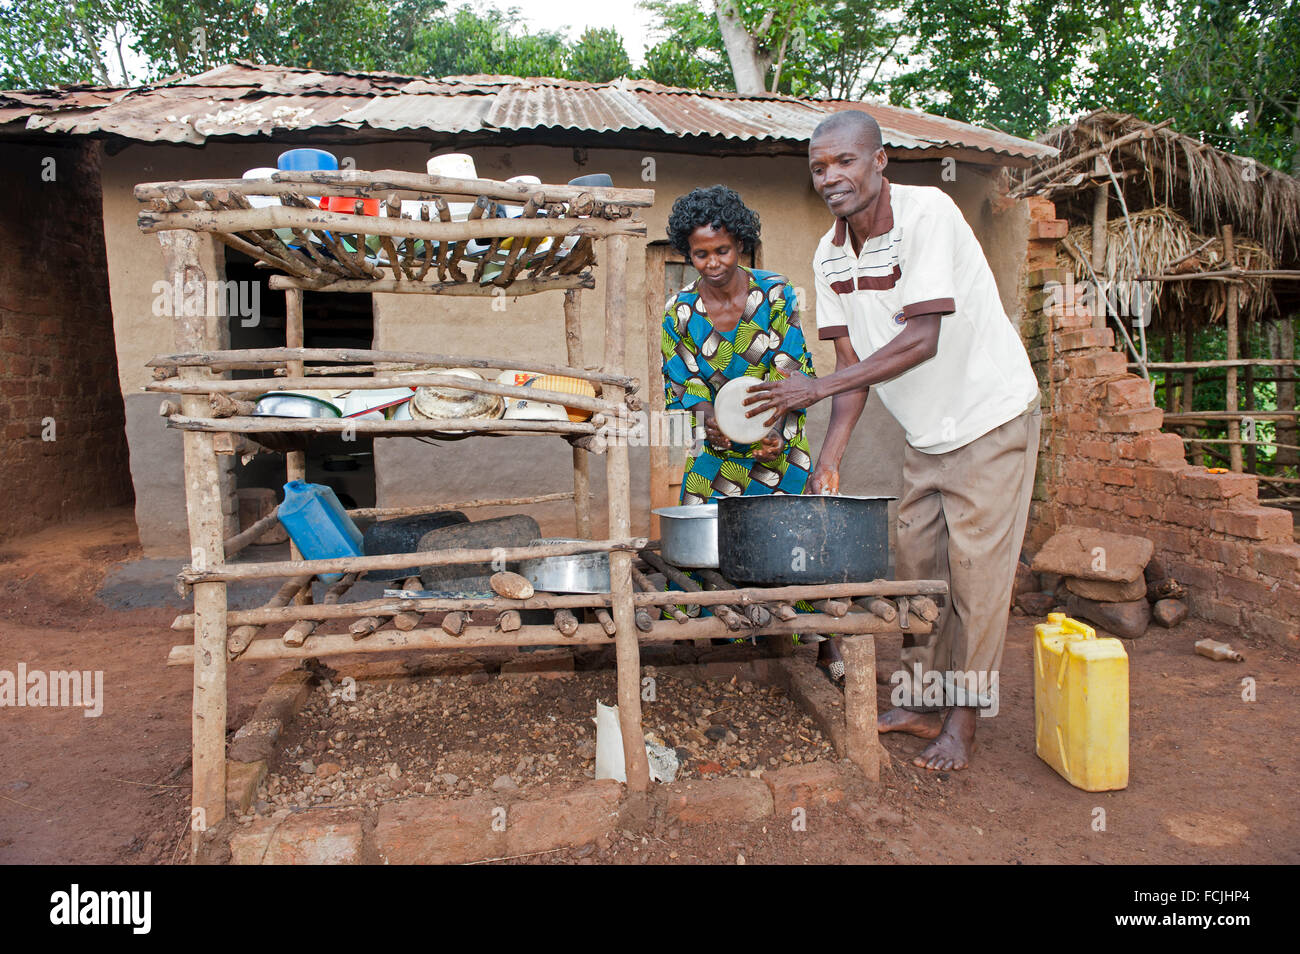 Ugandan couple working together to clean dishes in a rural village. Uganda. - Stock Image